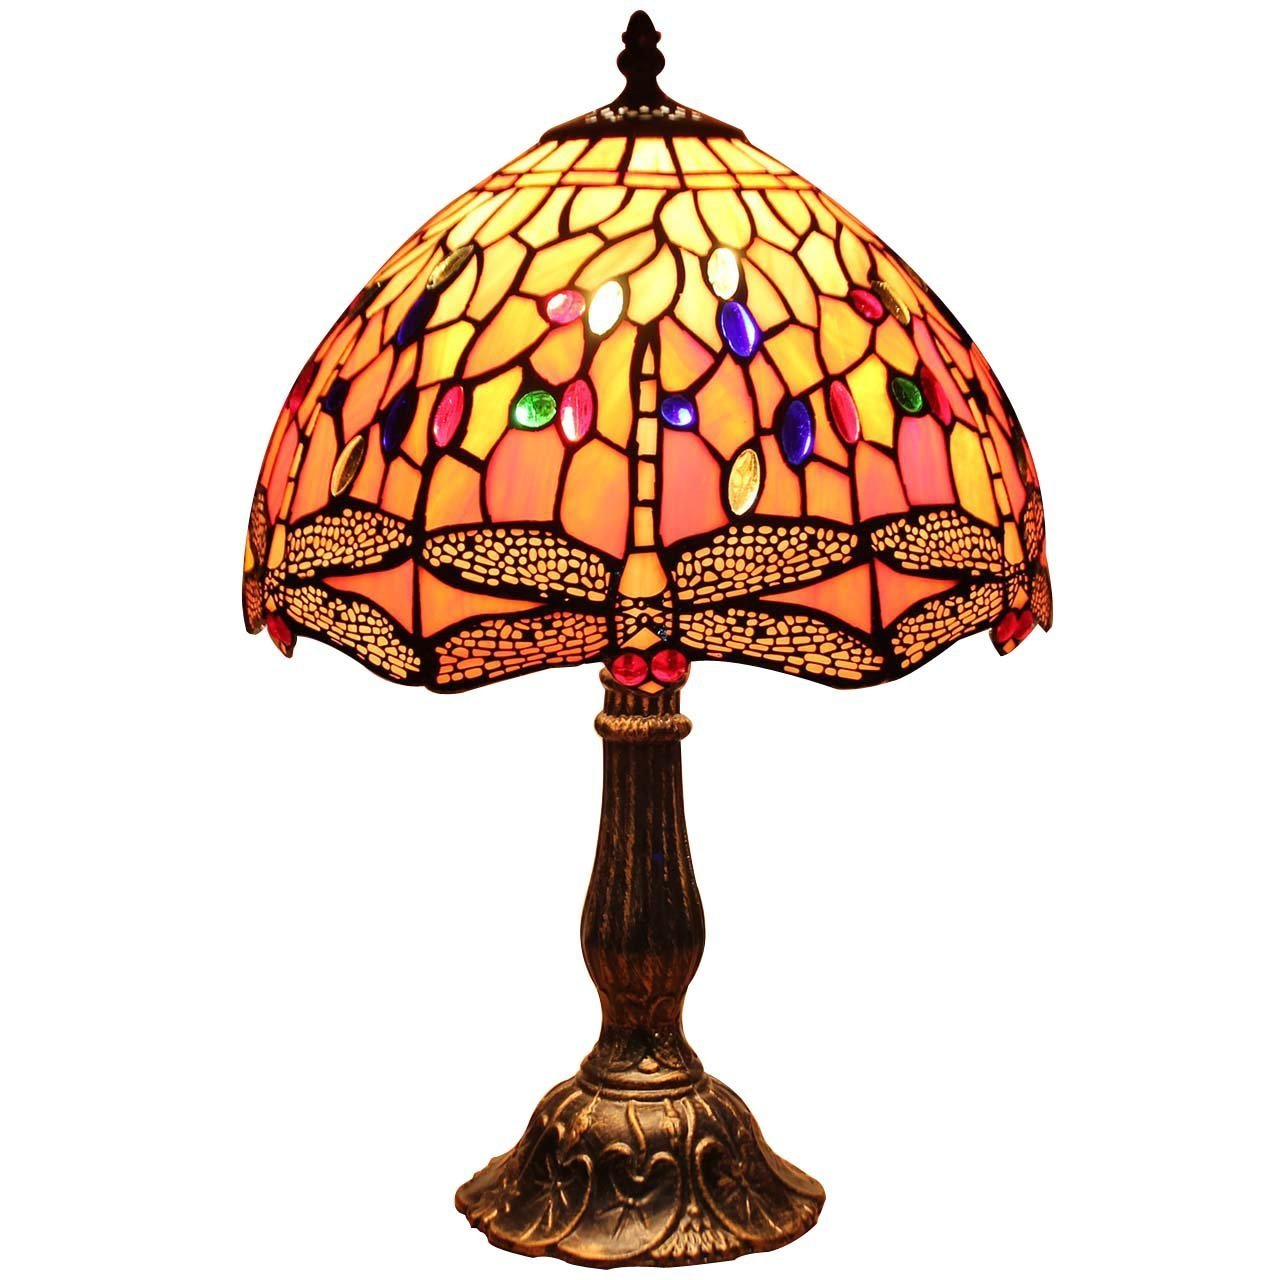 Bieye L10640 Dragonfly Tiffany Style Stained Glass Table Lamp Night Light with 12 inch Wide 6 Dragonflies Lampshade and Metal Base, Orange, 18 inch Tall